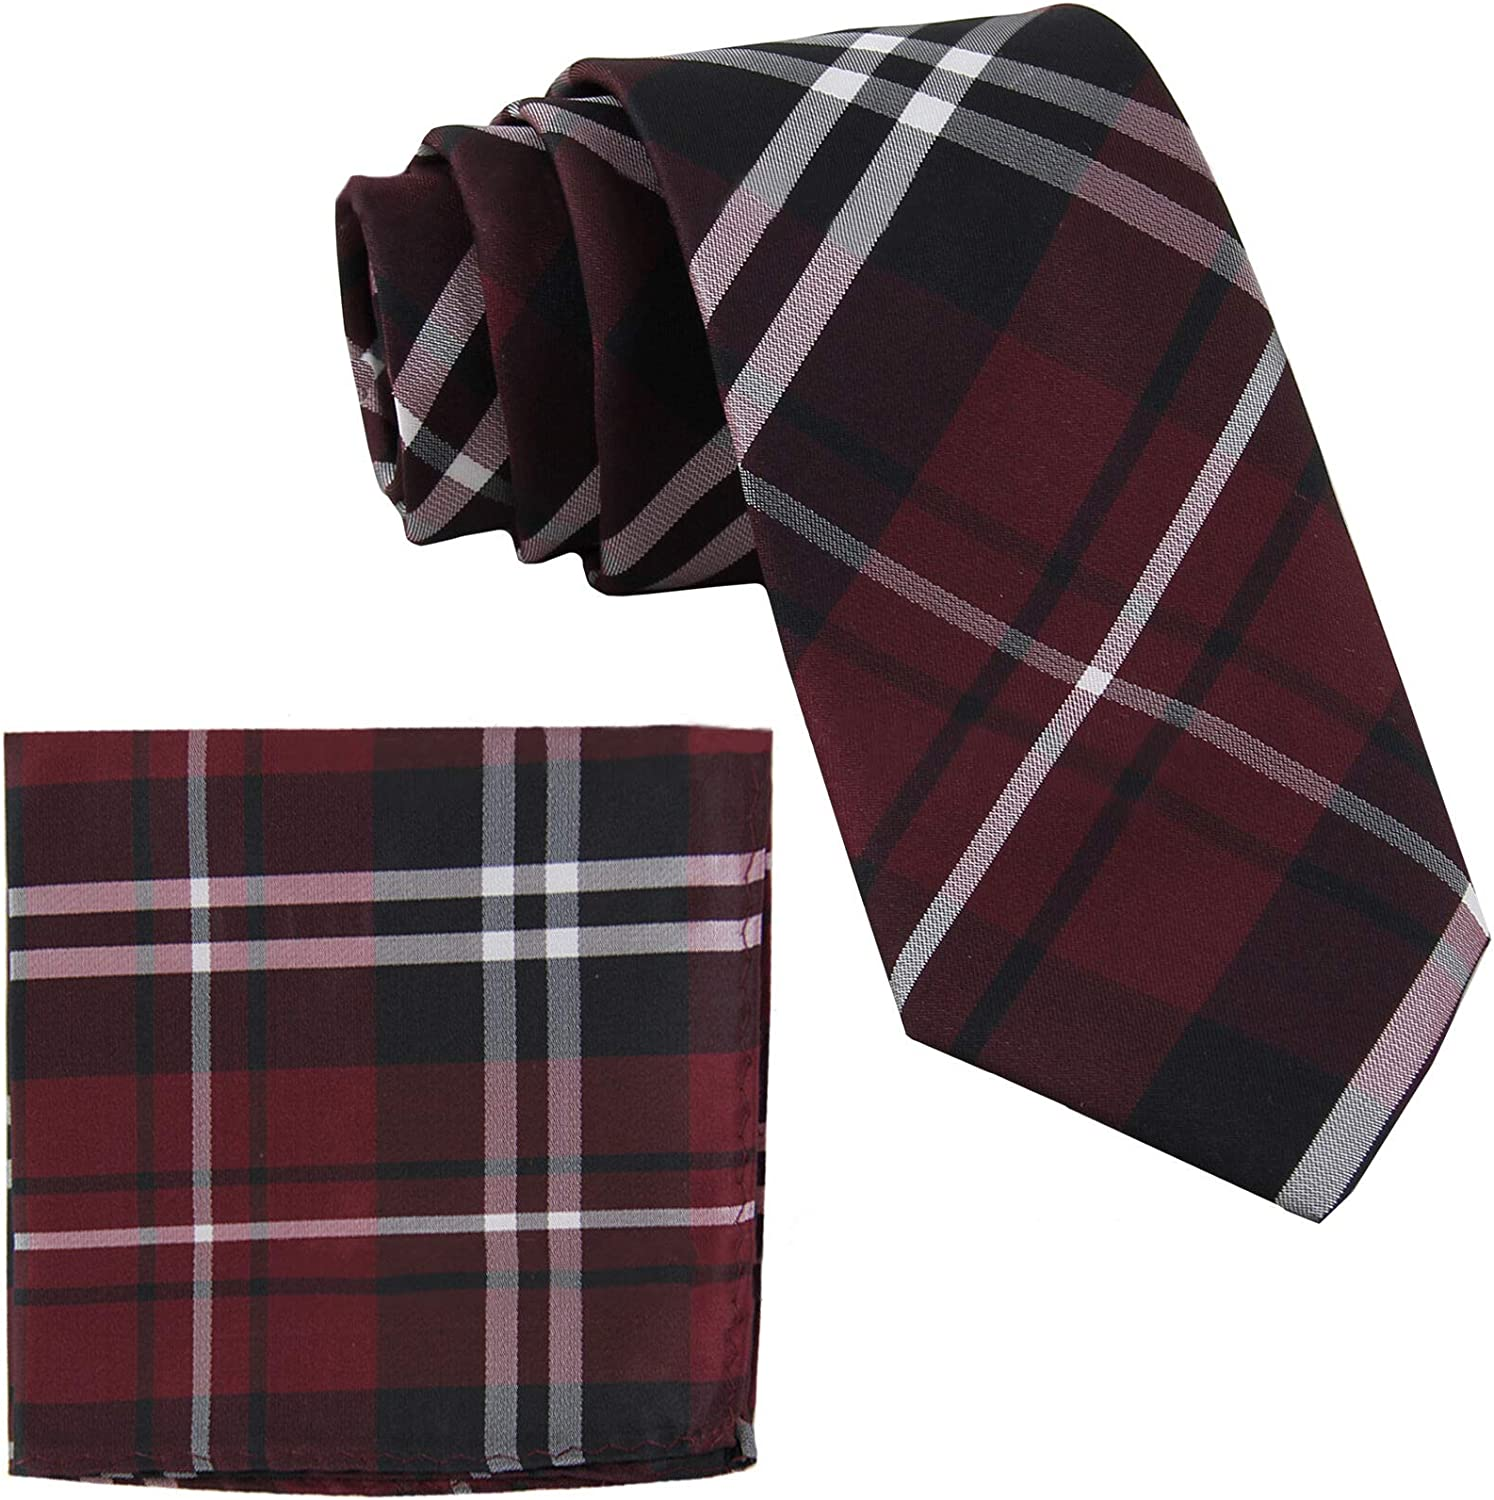 Polyester Mens Checkered Burgundy Necktie With Pocket Square Set for Men Woven Skinny Suit Tie with Handkerchief for Wedding Birthday Party